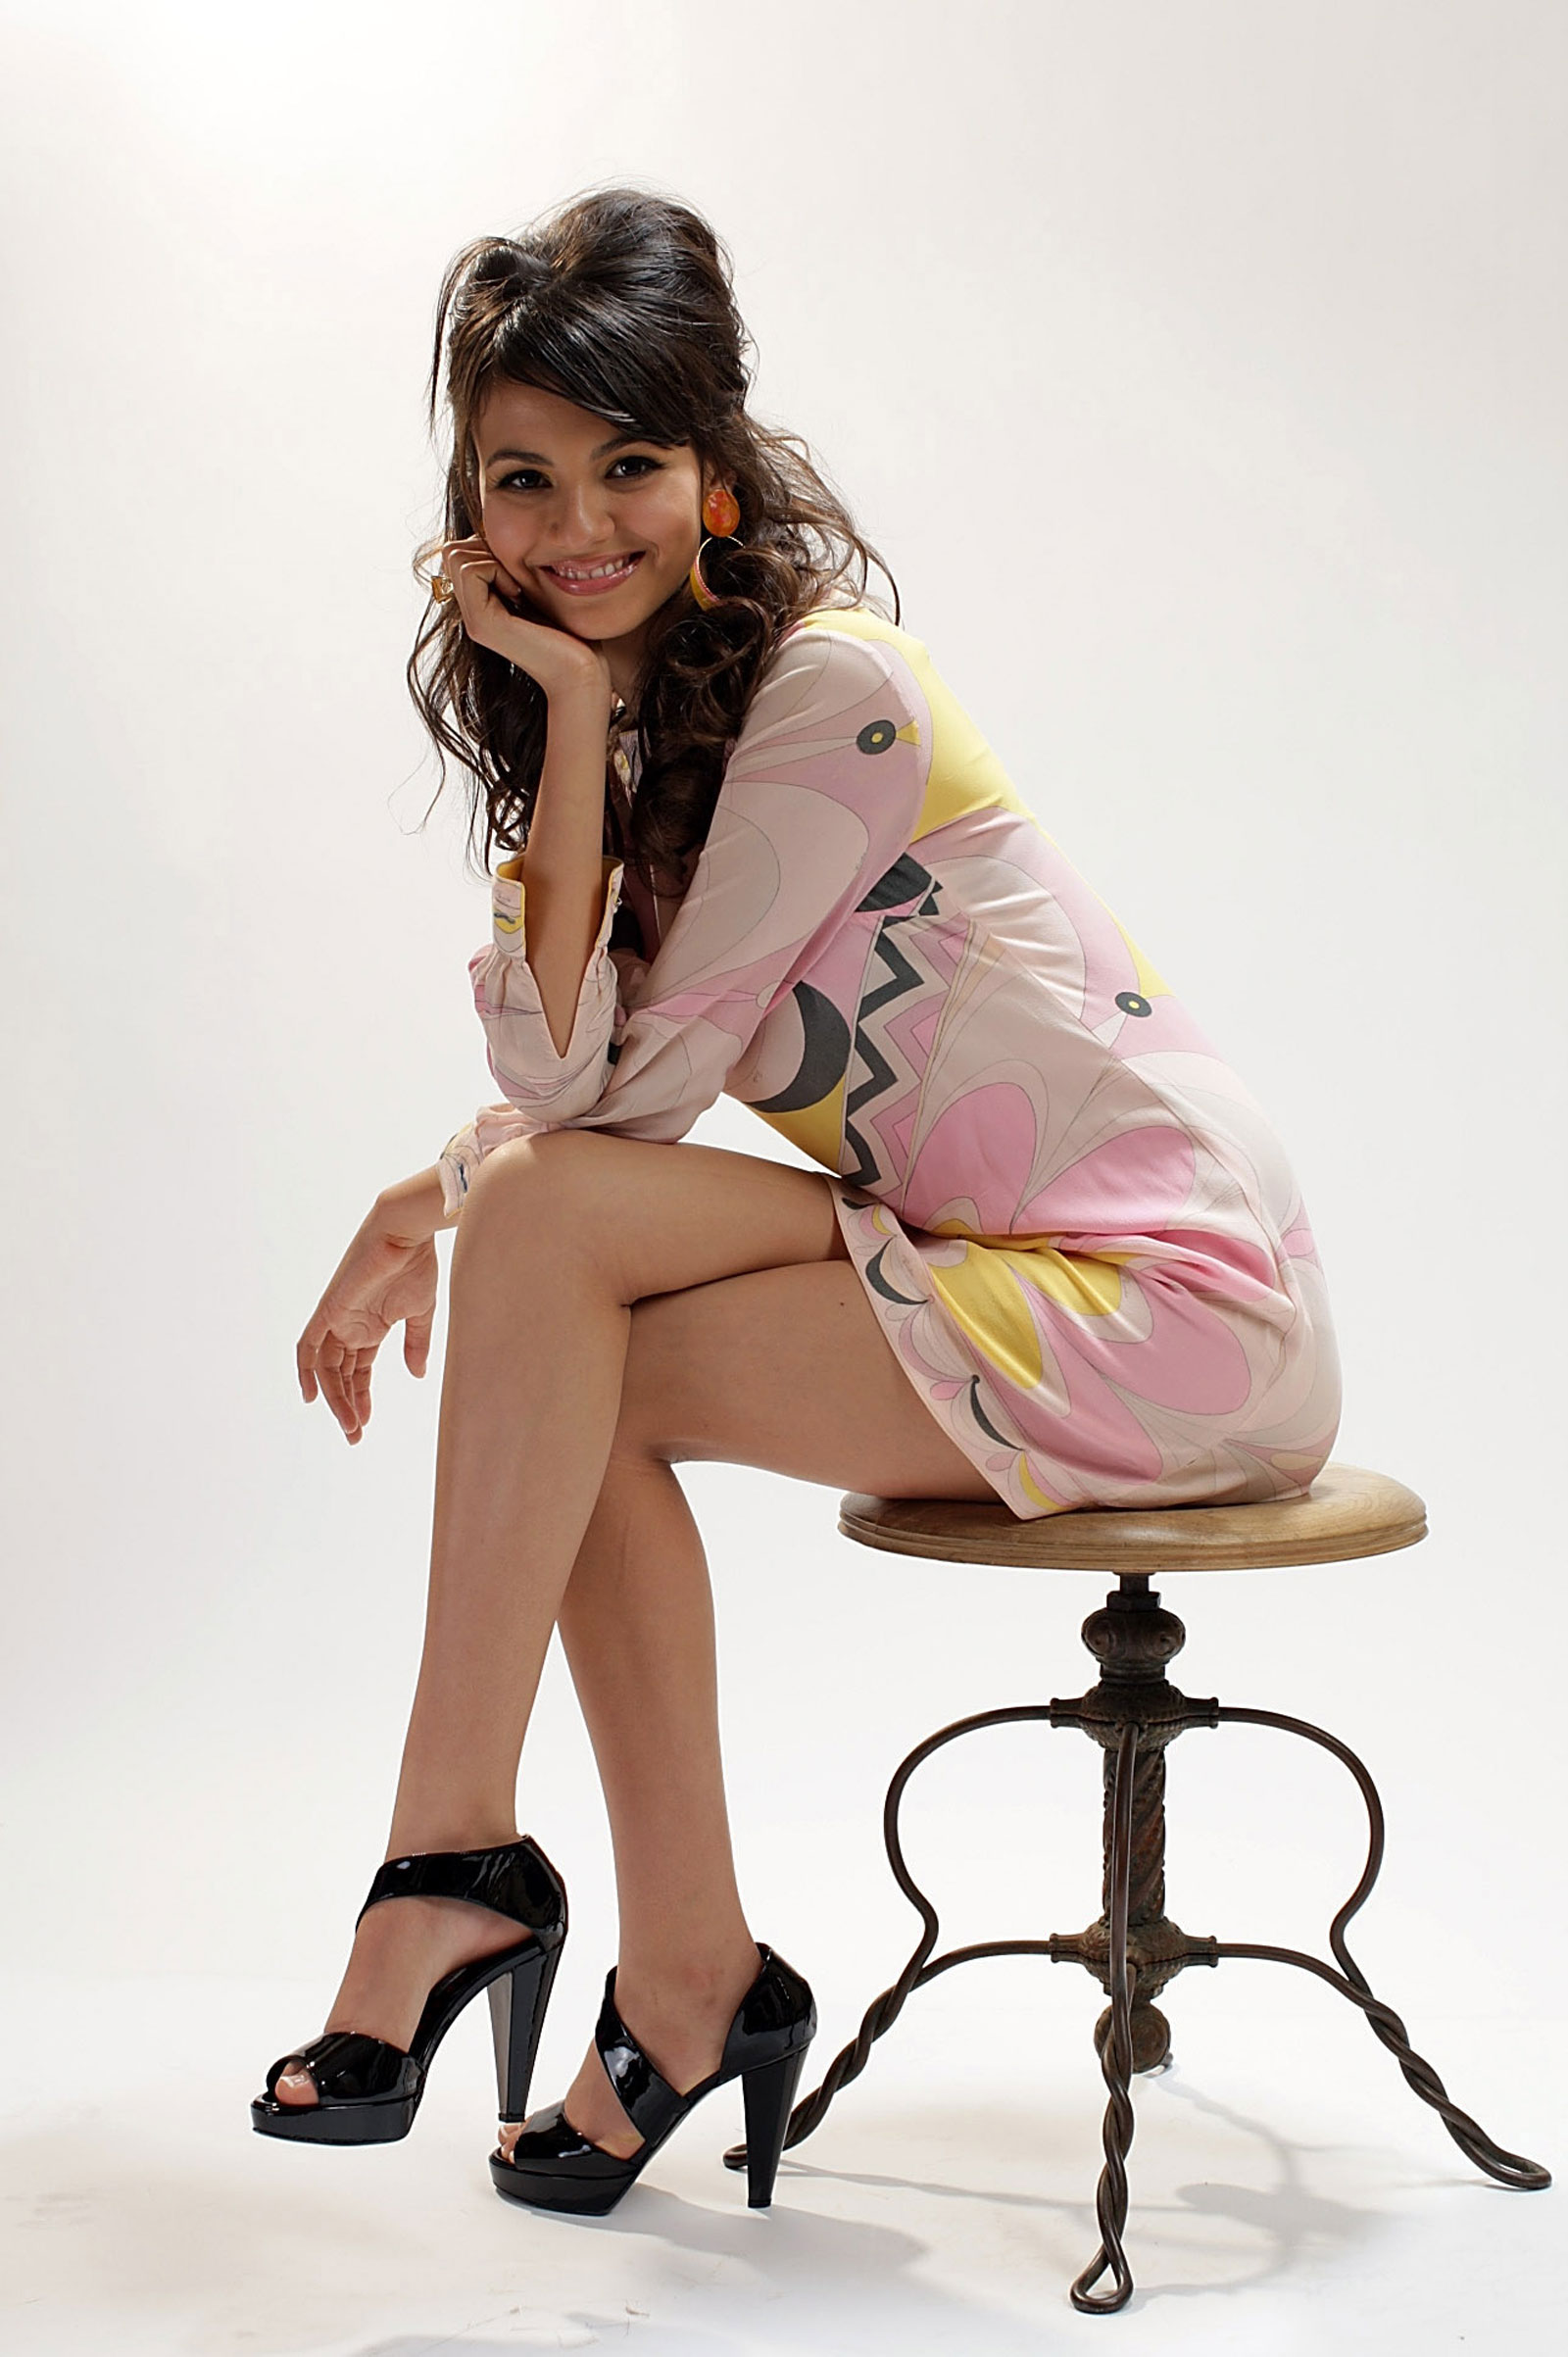 Victoria Justice At Michael Bezjian Photoshoot